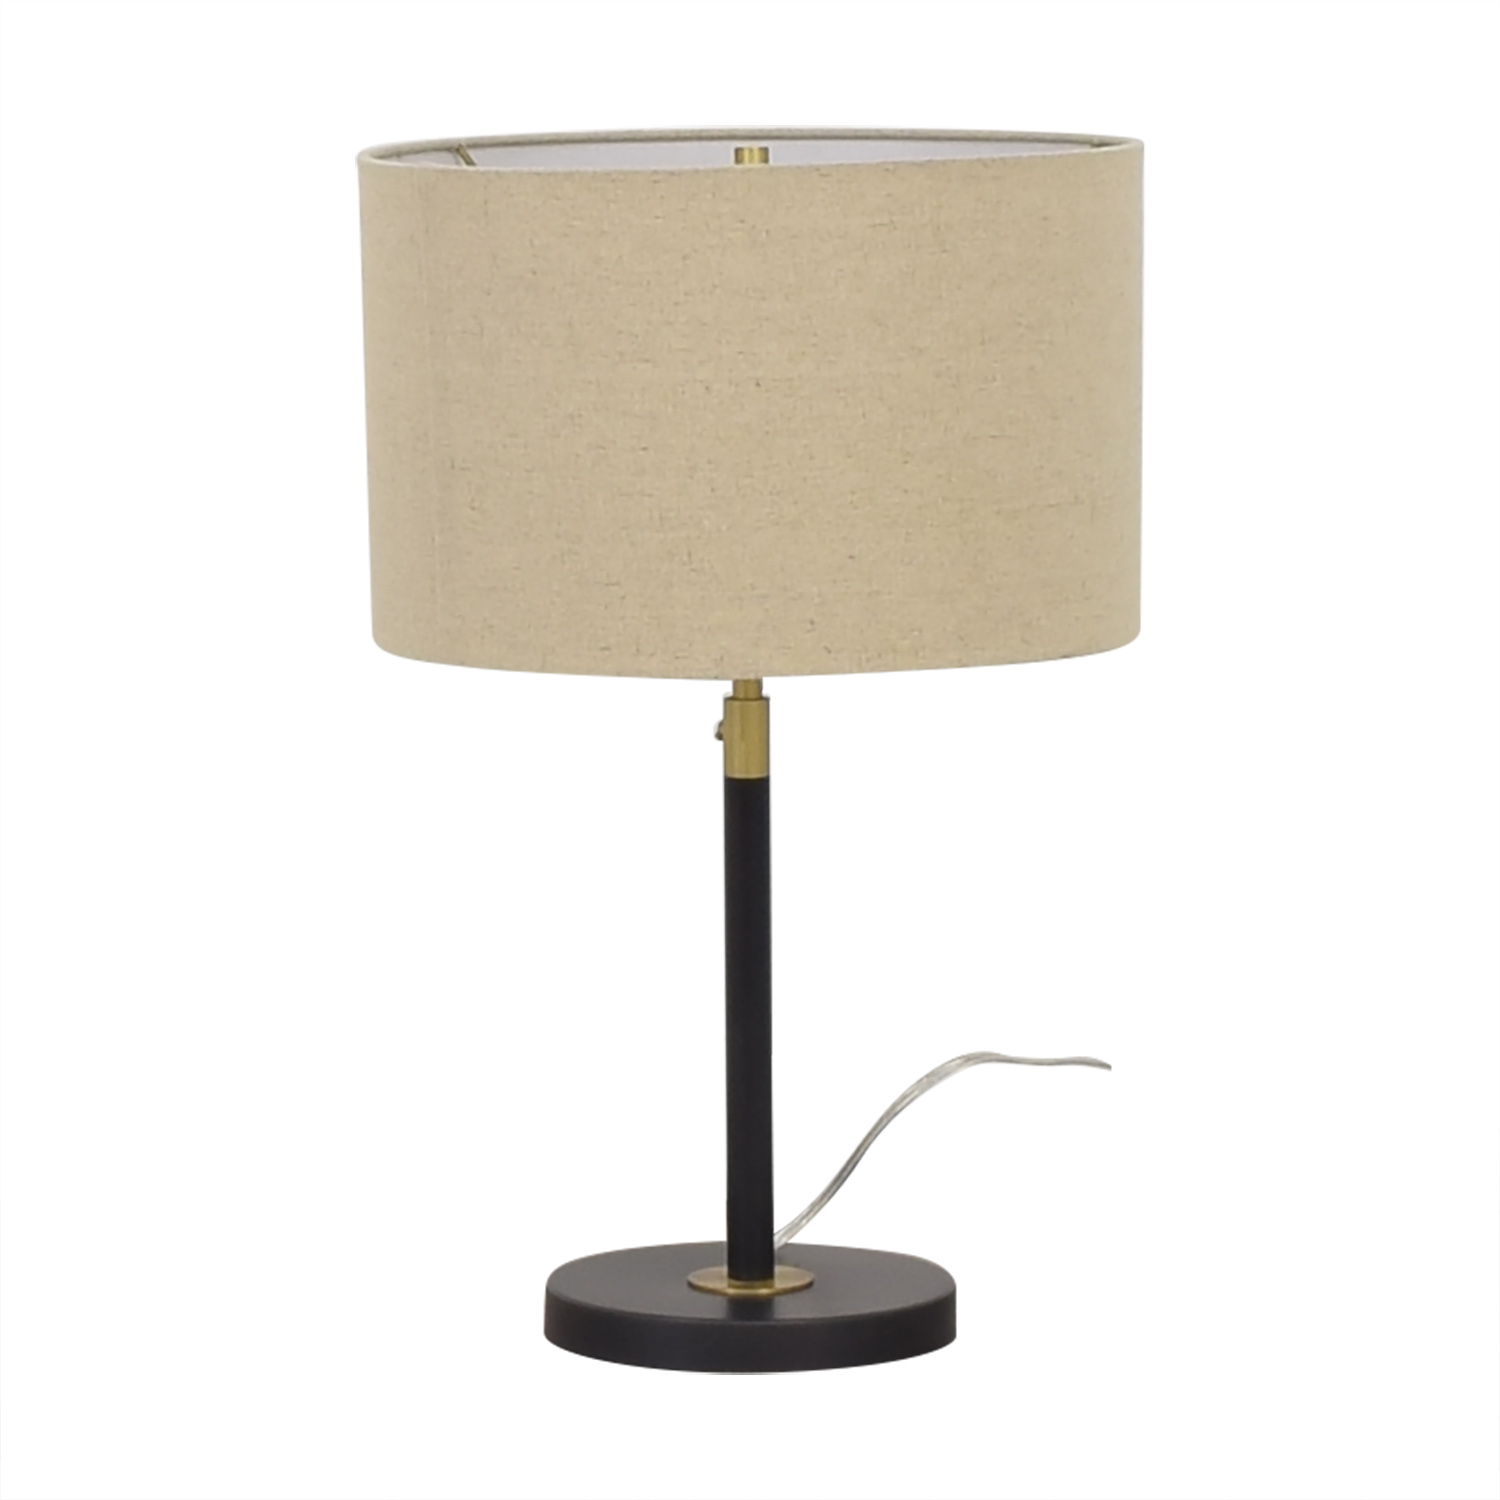 West Elm West Elm Telescoping Adjustable Table Lamp coupon